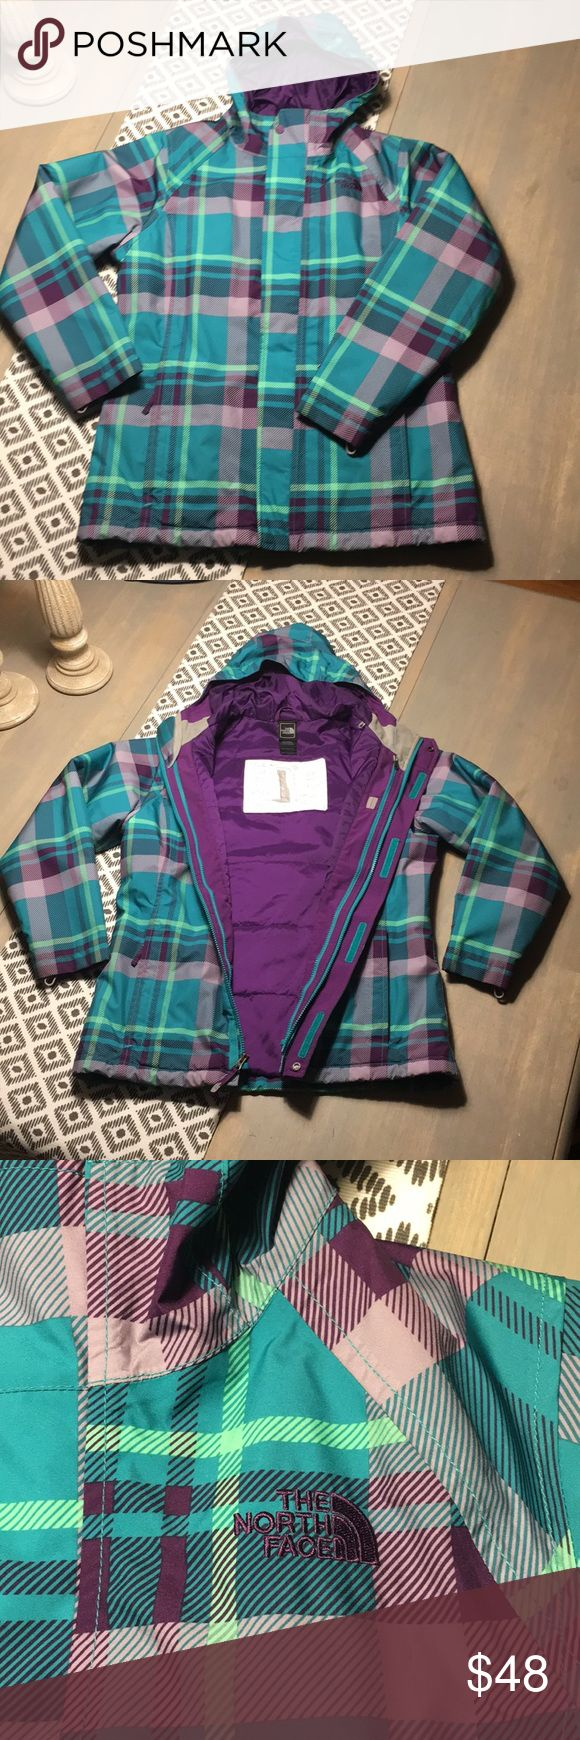 North Face Triclimate Jacket - EUC - XL Girls/XS W Excellent used condition North Face Jacket - size XL girls or a XS Women. Beautiful and vibrant colors distributed on a charming plaid print. Nice and warm but not heavy, this jacket is perfect for the cold weather! Comes from a smoke and pet free home! North Face Jackets & Coats Puffers